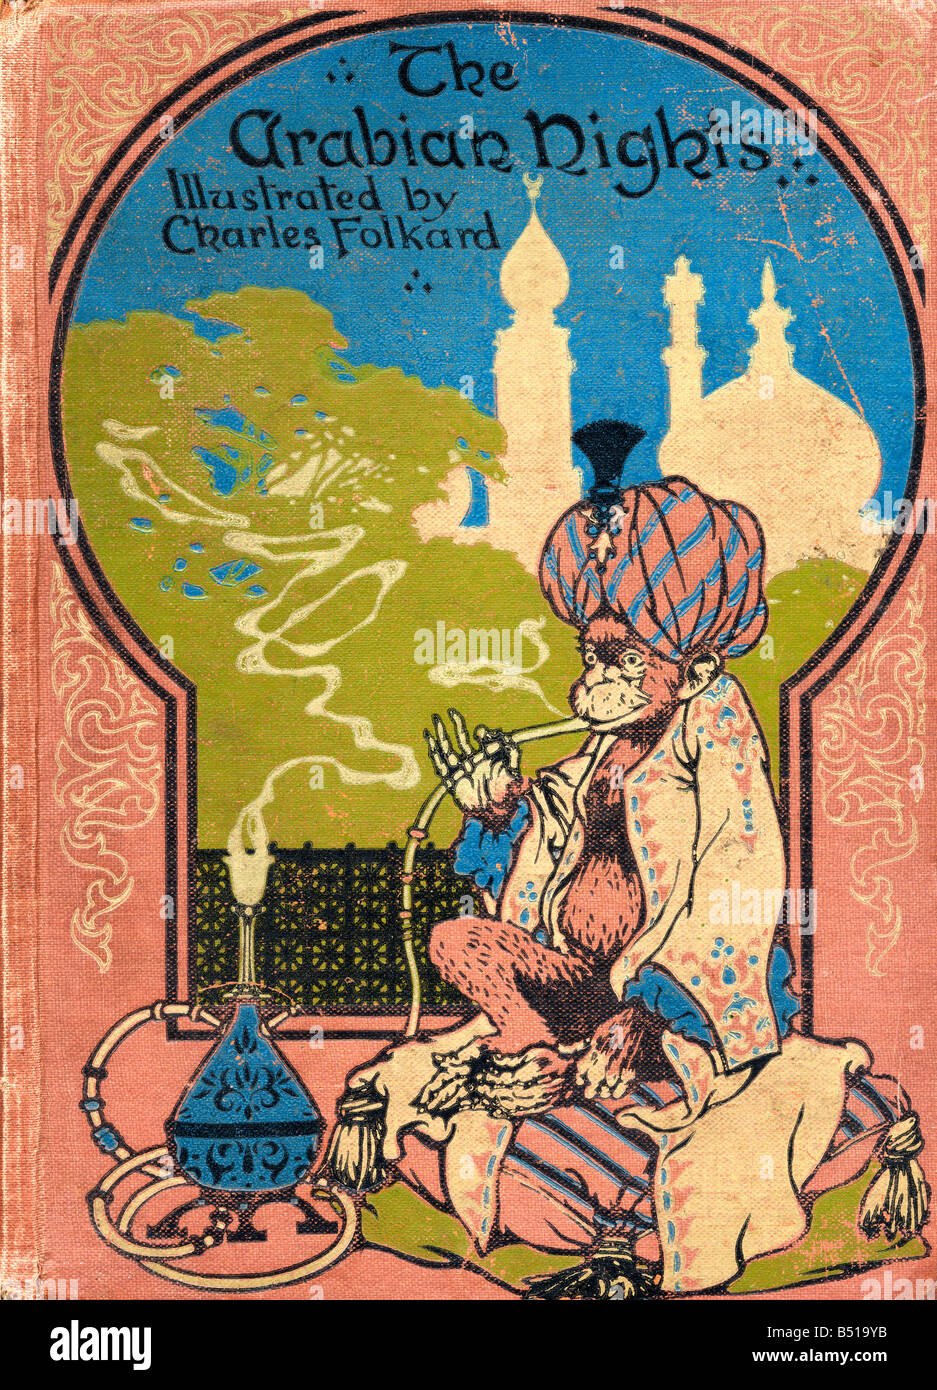 Front cover illustration by Charles Folkard from the book The Arabian Nights published 1917 - Stock Image